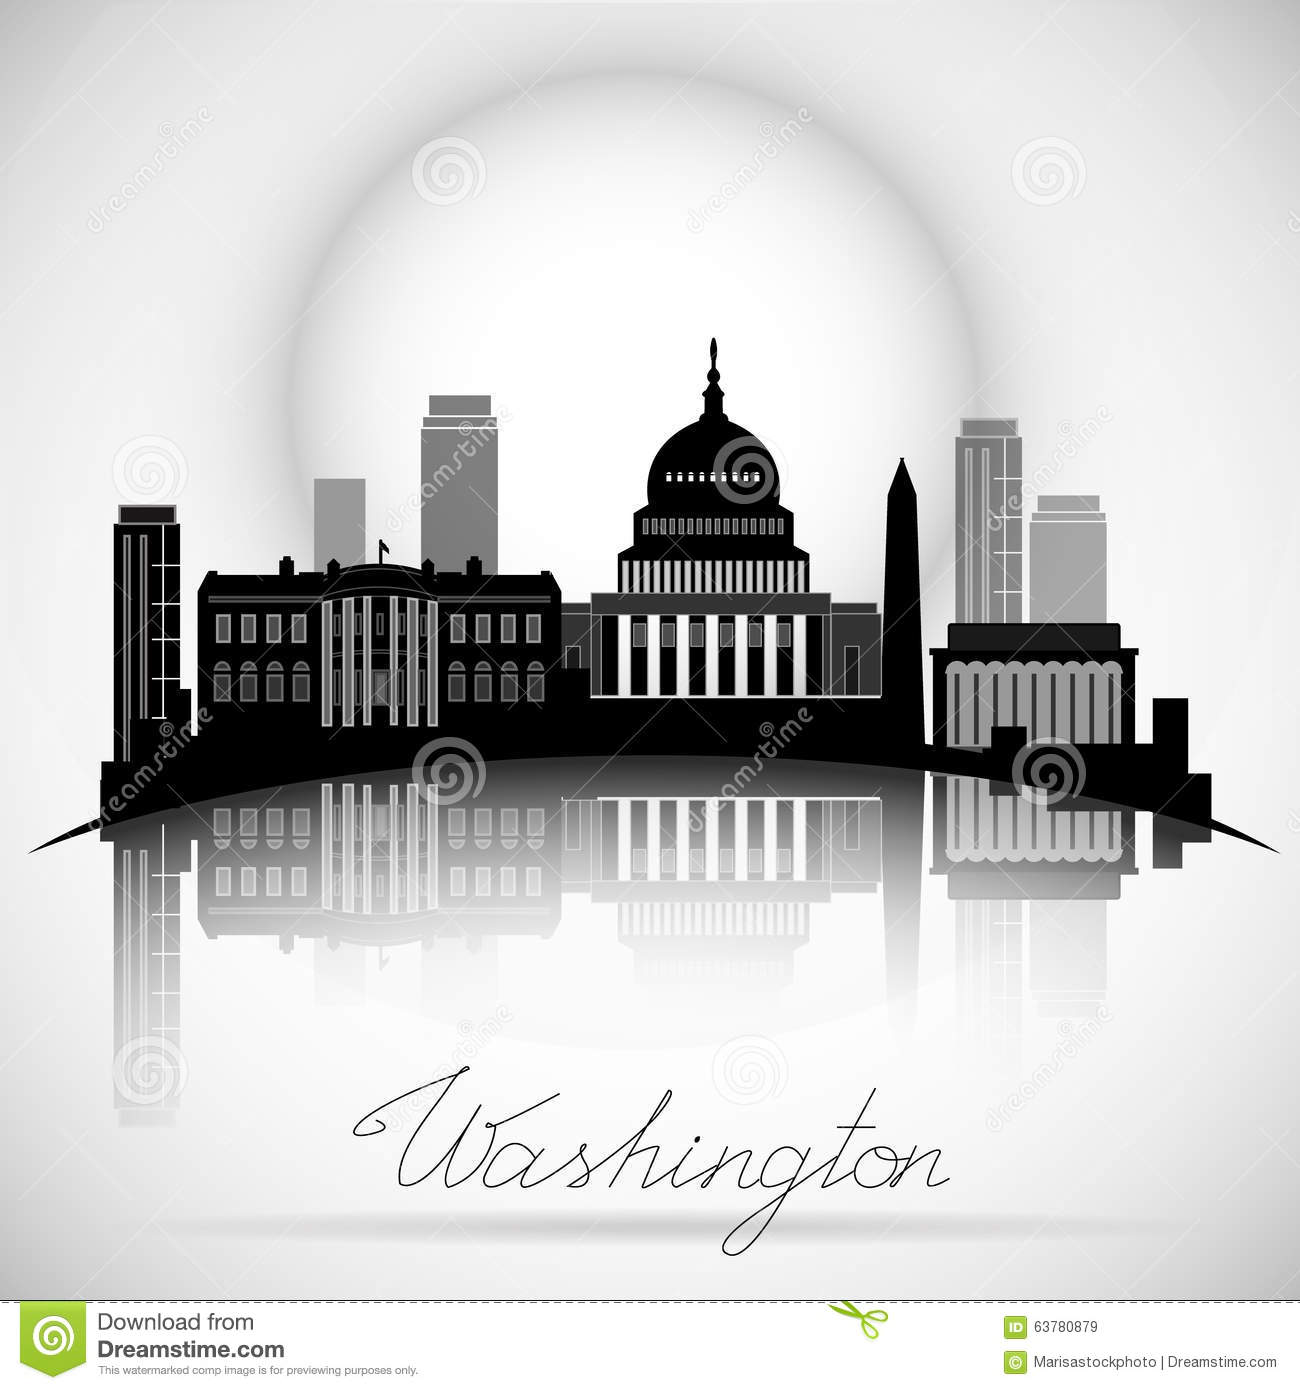 Washington dc skyline design vector silhouette stock vector image 63780879 for Who designed the basic plan for washington dc